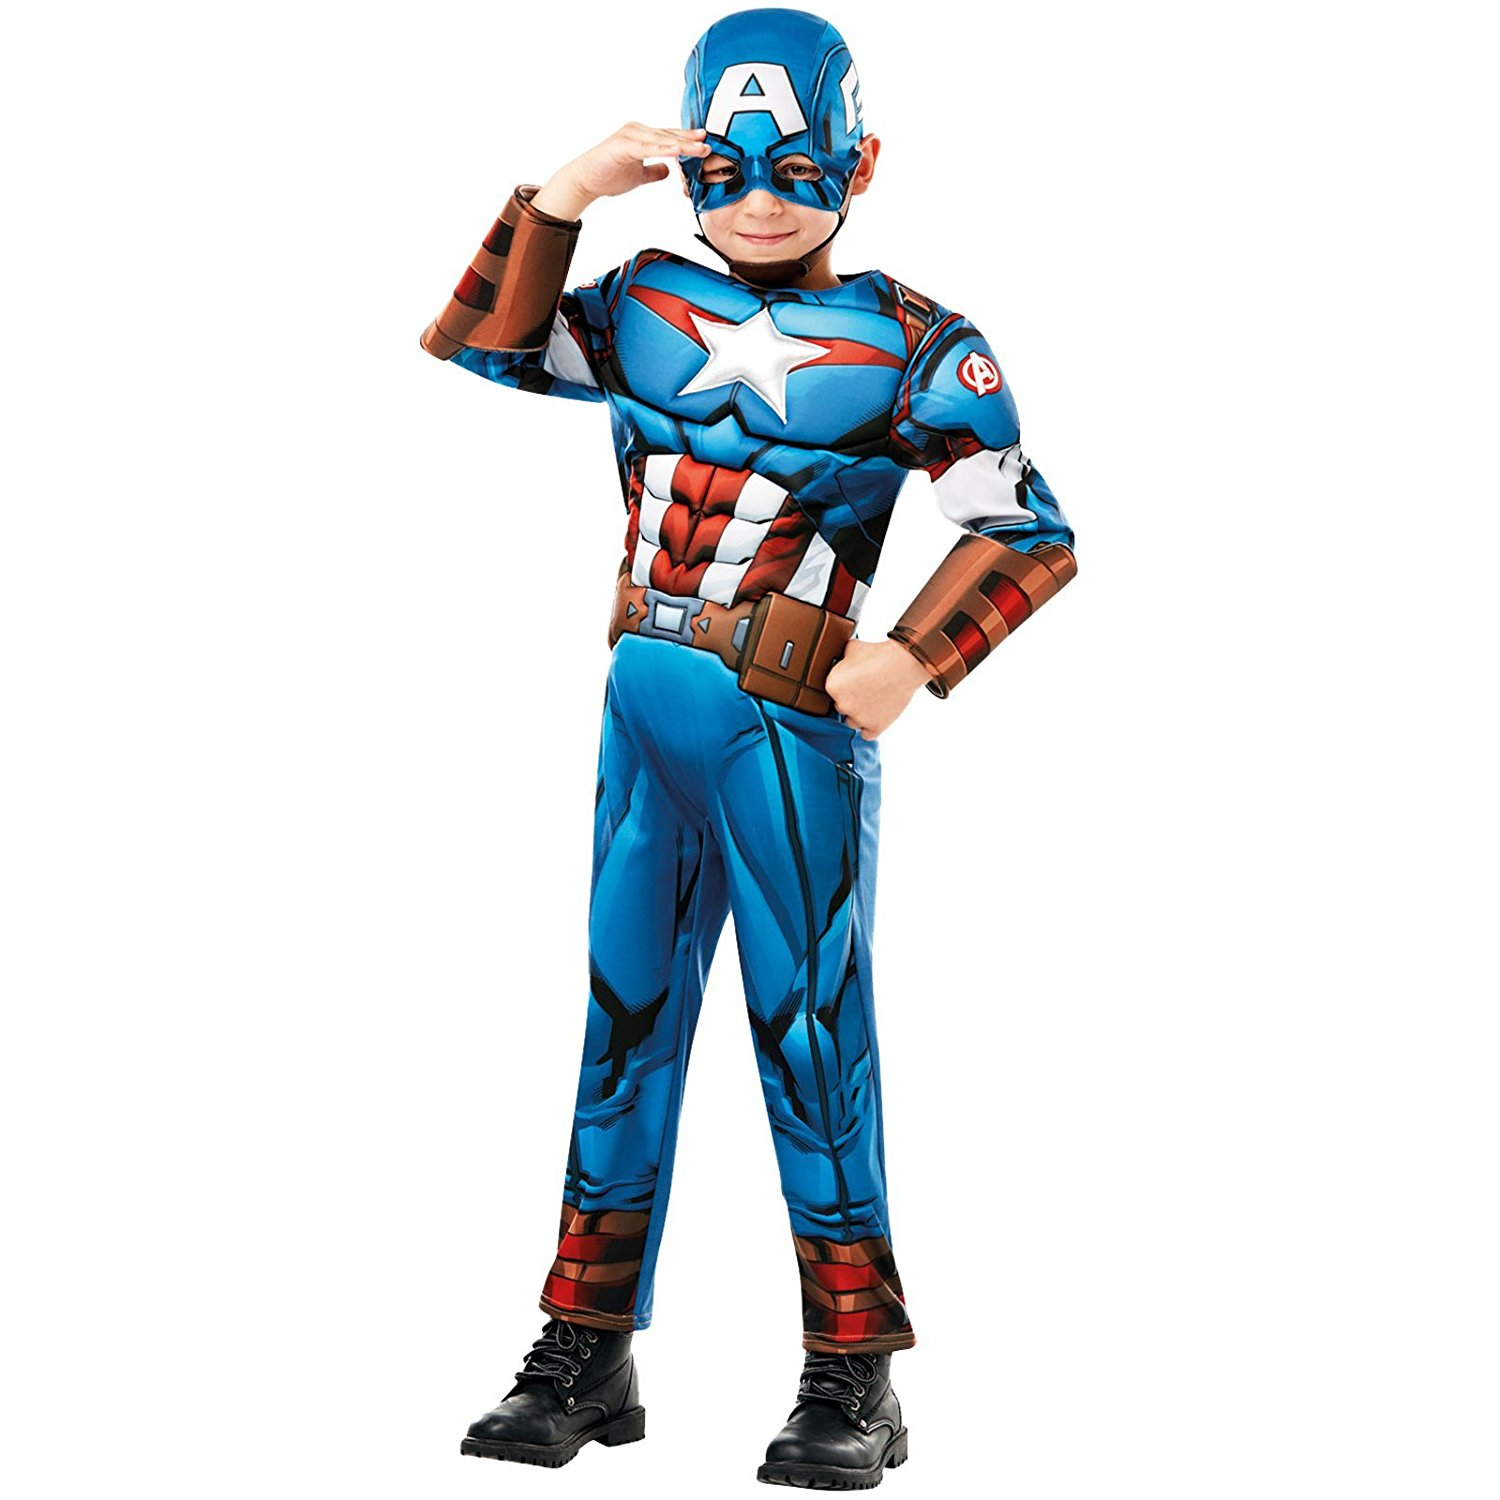 Marvel deluxe Captain America costume 640833